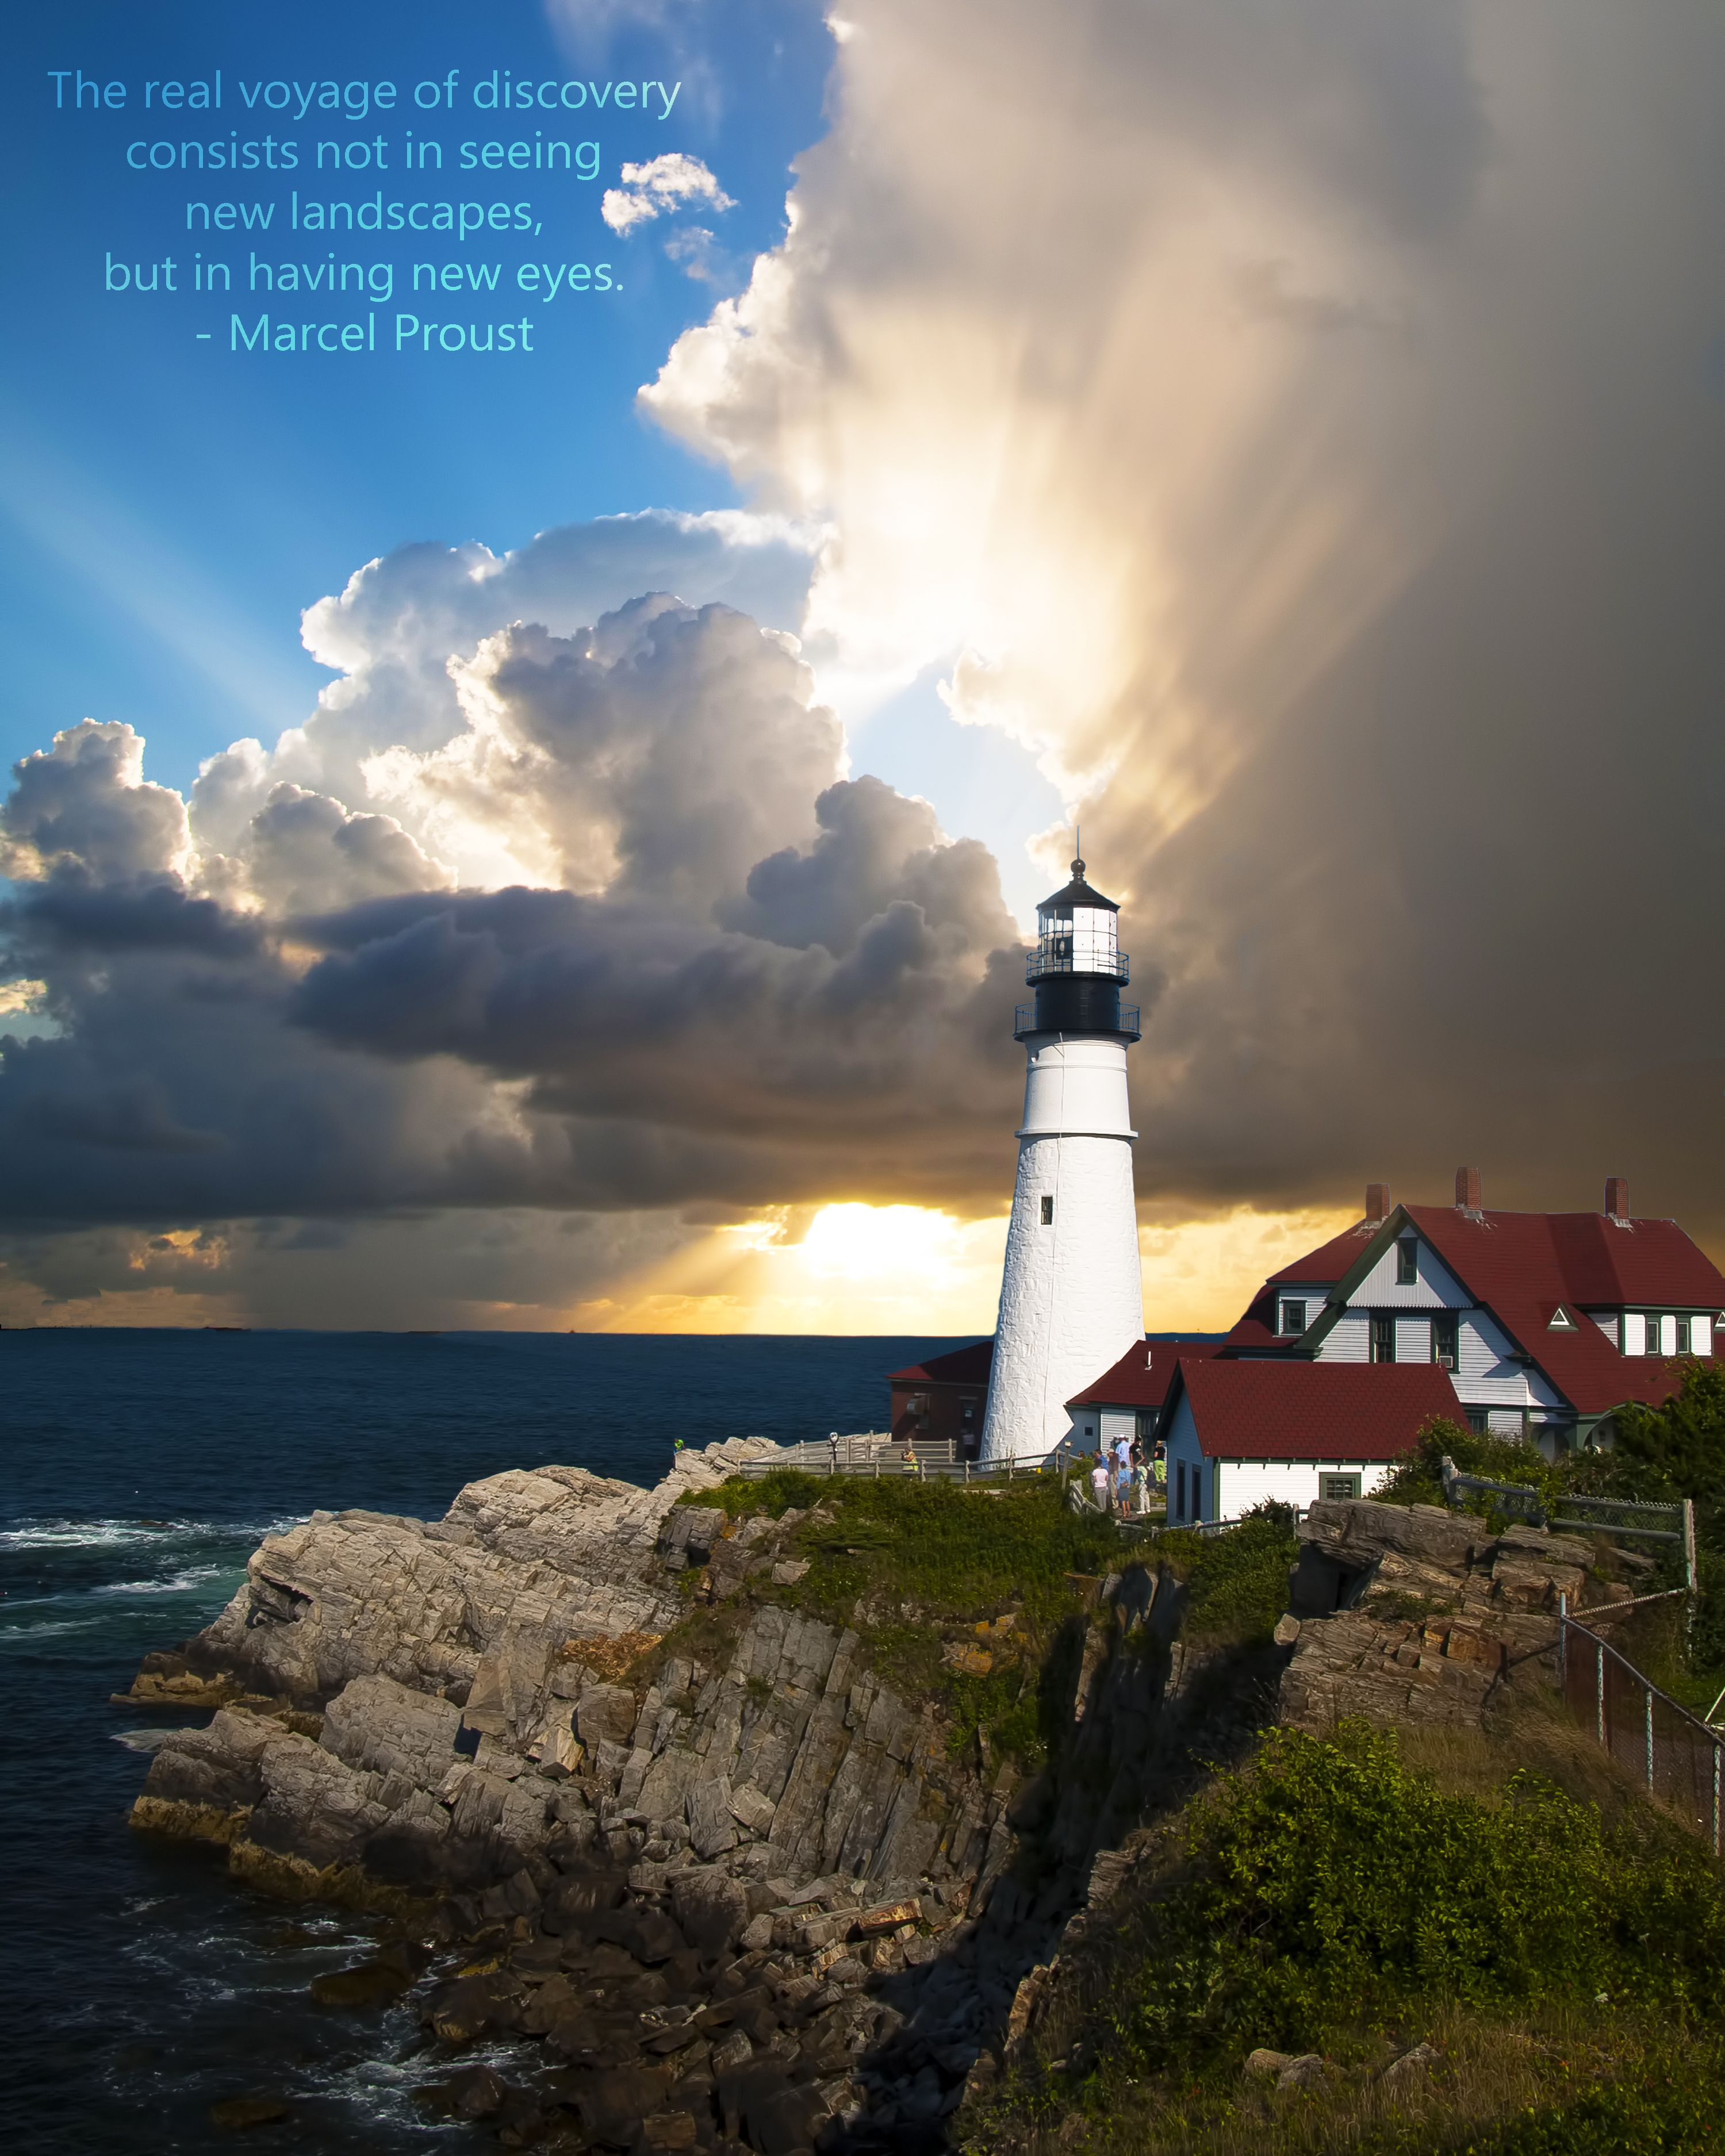 Quote By Marcel Proust Travel Quotes Lighthouse Lighthouse